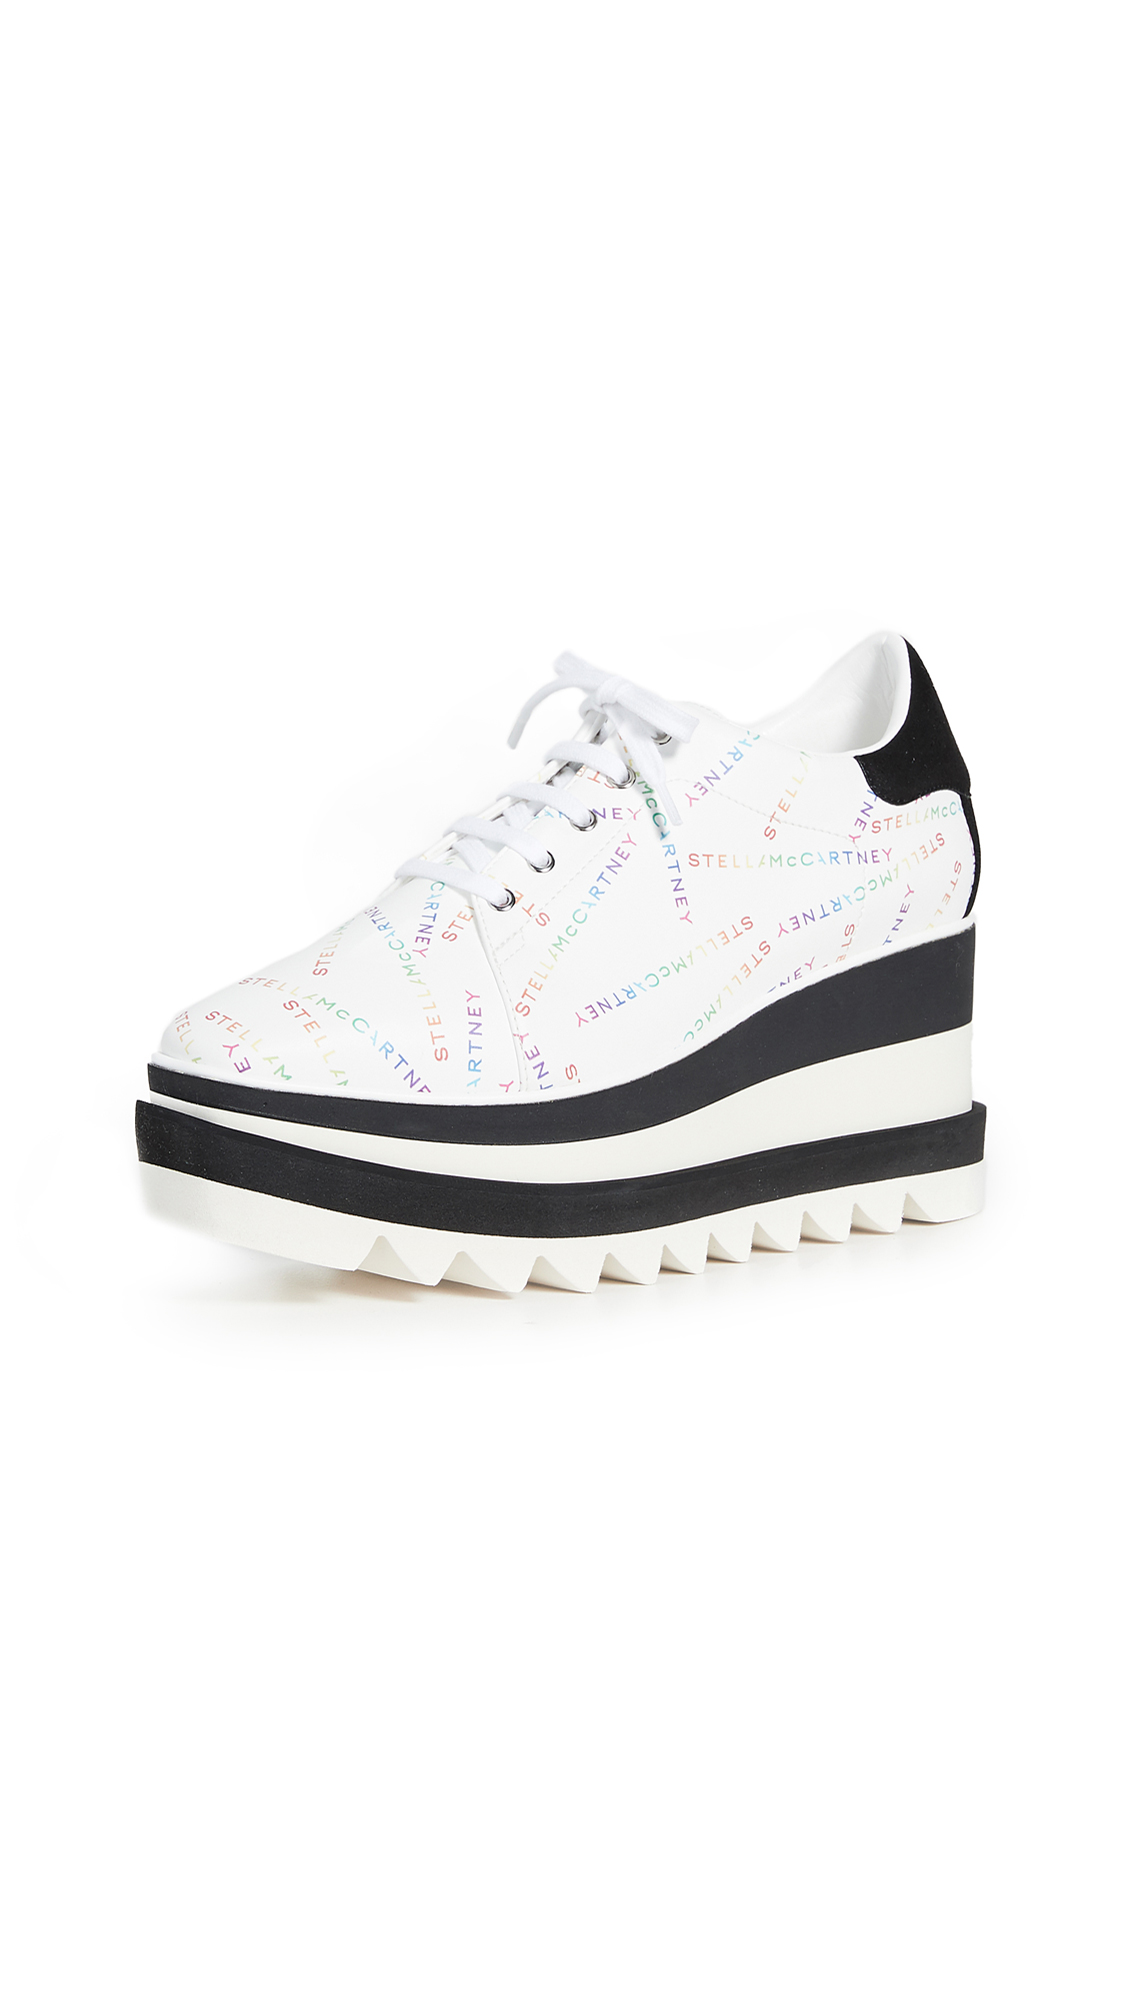 Buy Stella McCartney Sneakelyse Lace Up Sneakers online, shop Stella McCartney